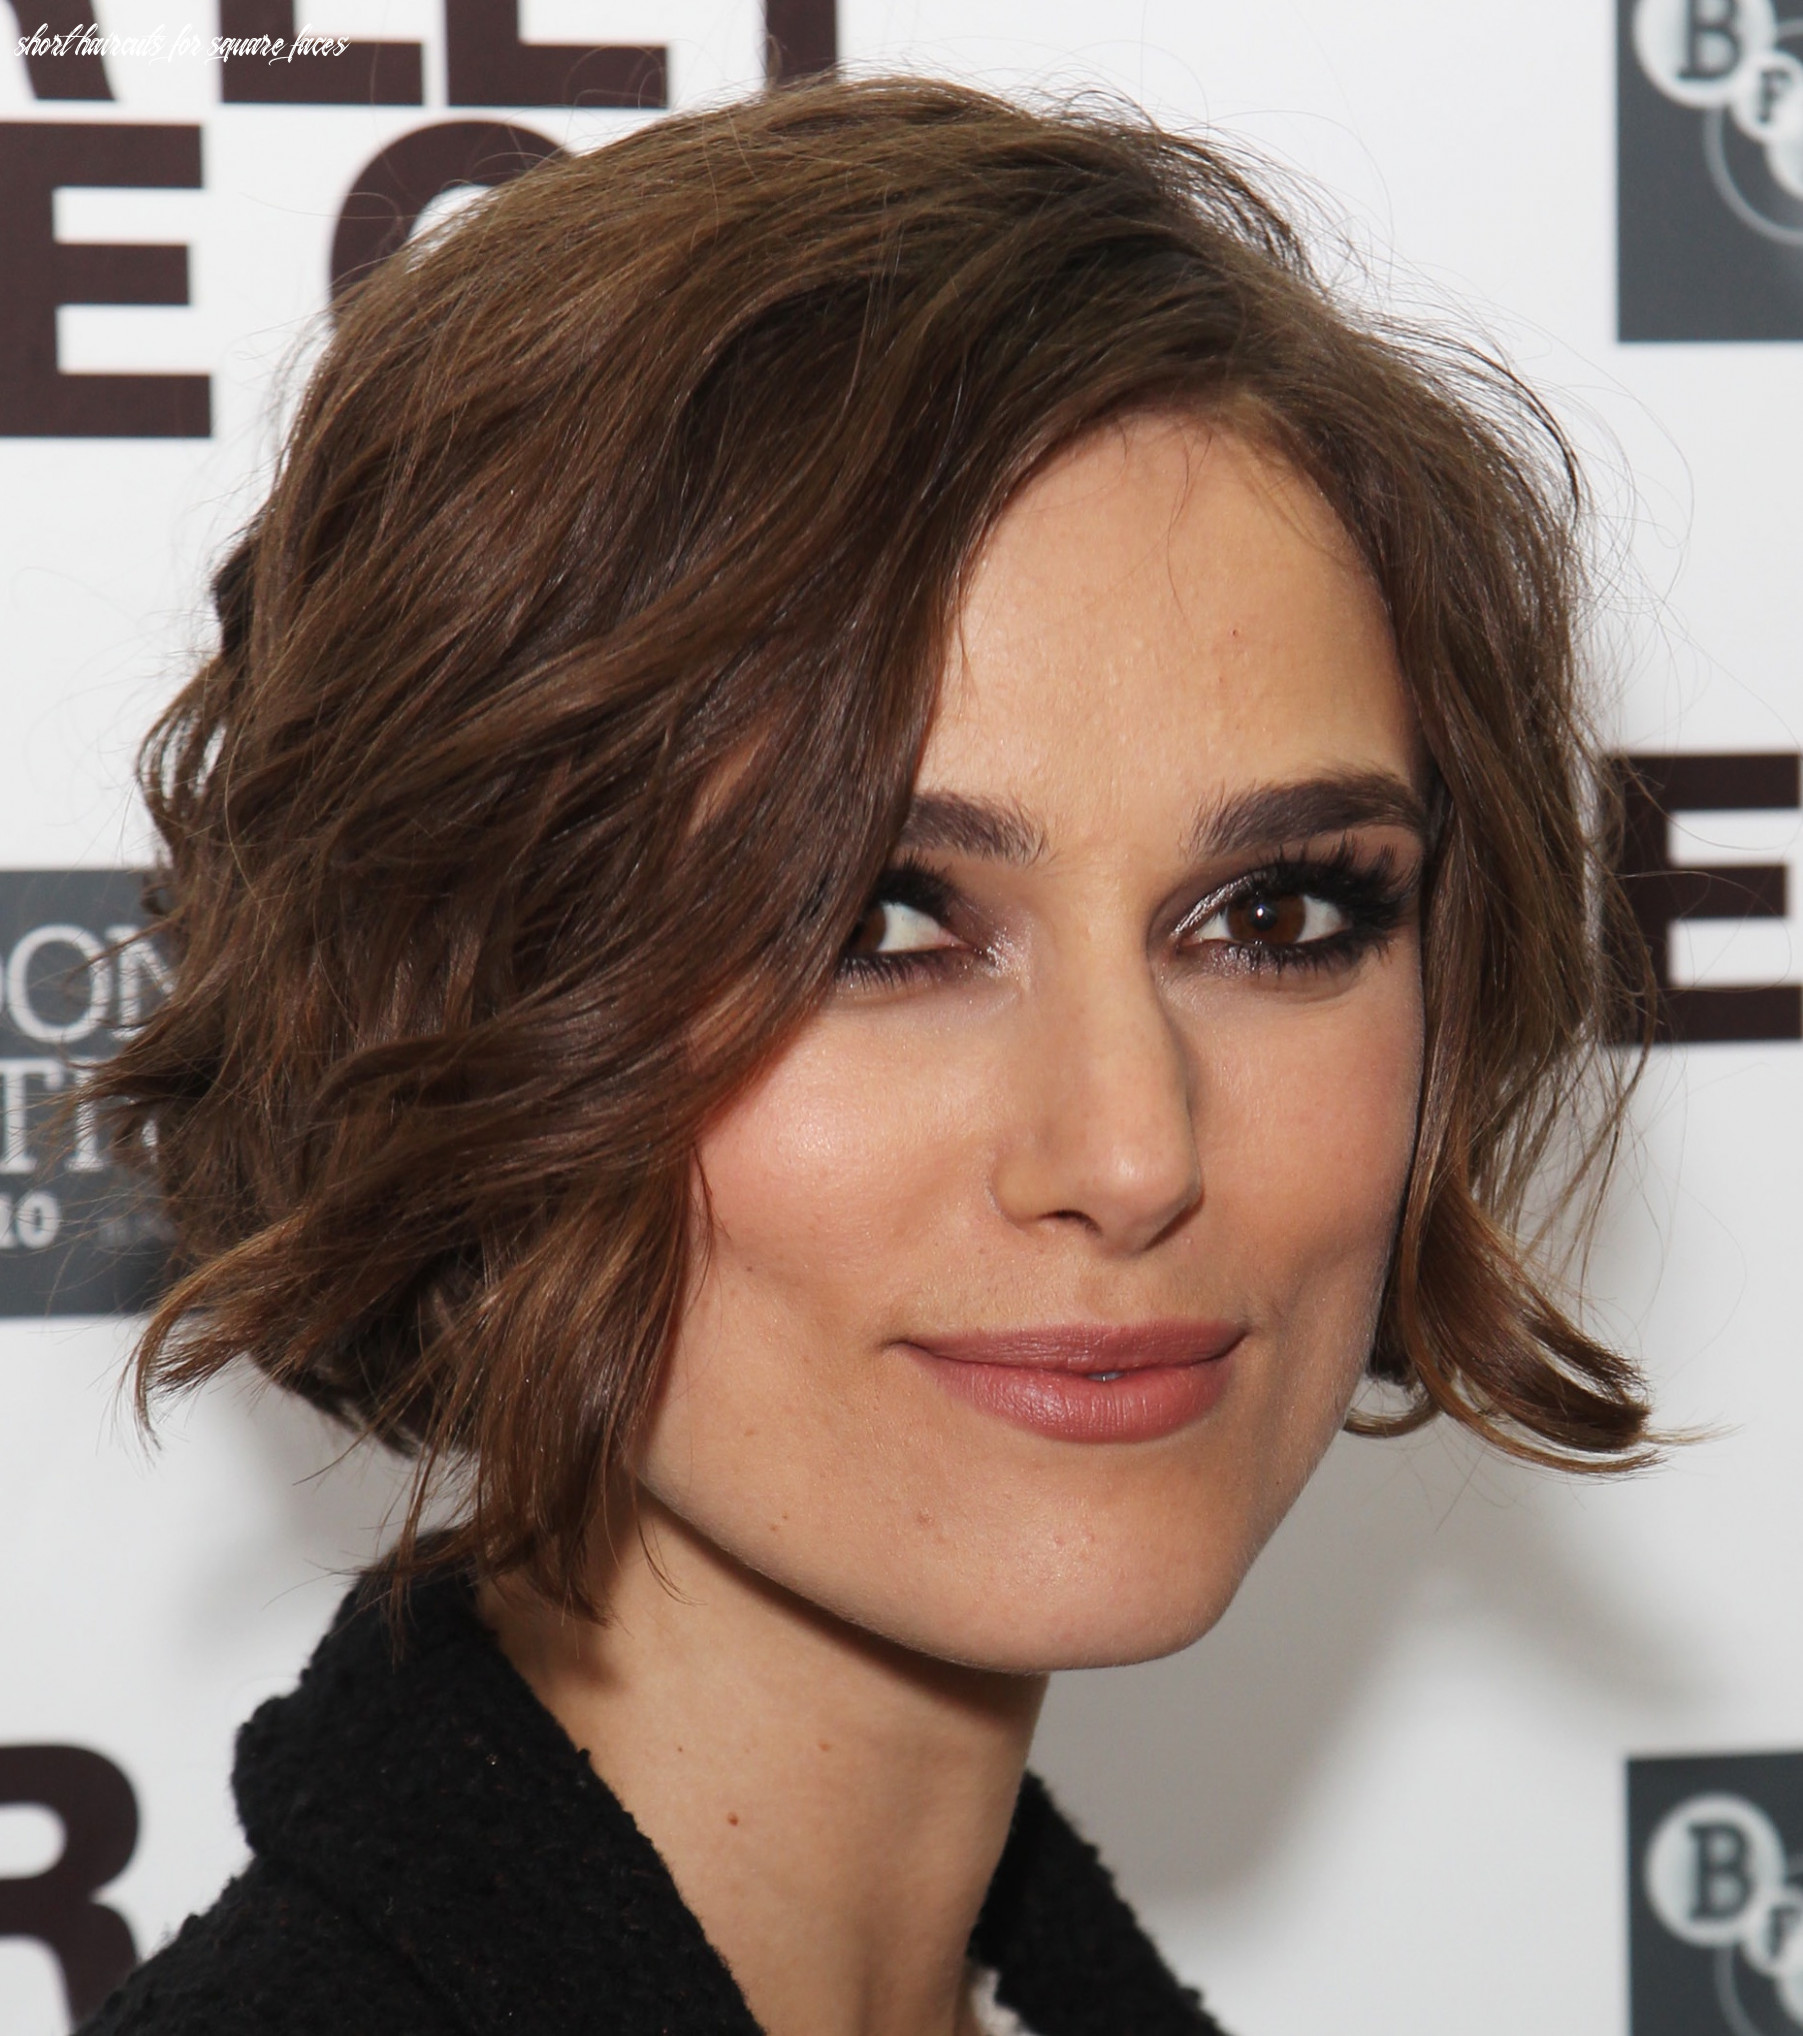 11 best hairstyles for square faces rounding the angles short haircuts for square faces